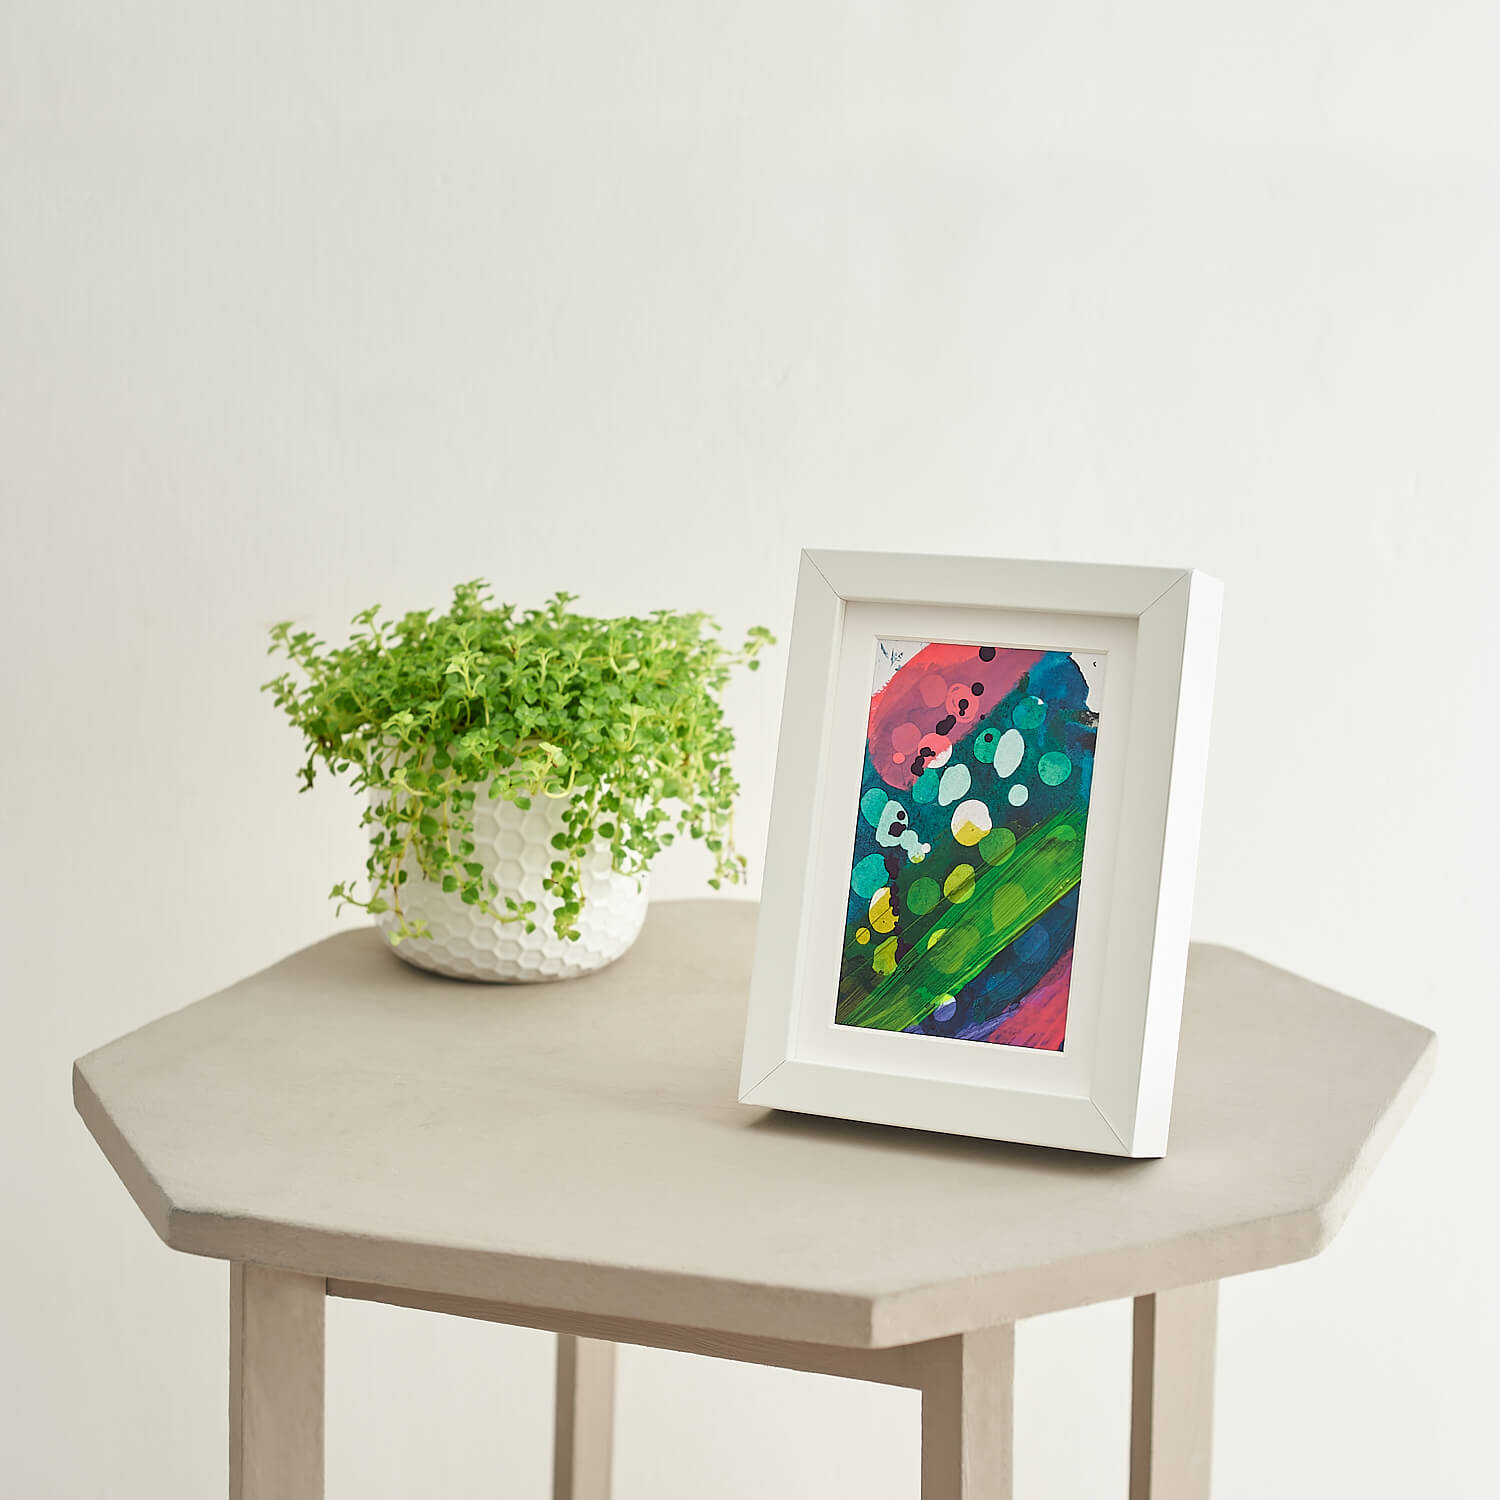 Contemporary minimalist product photograph of painting by artist Kia Cannons